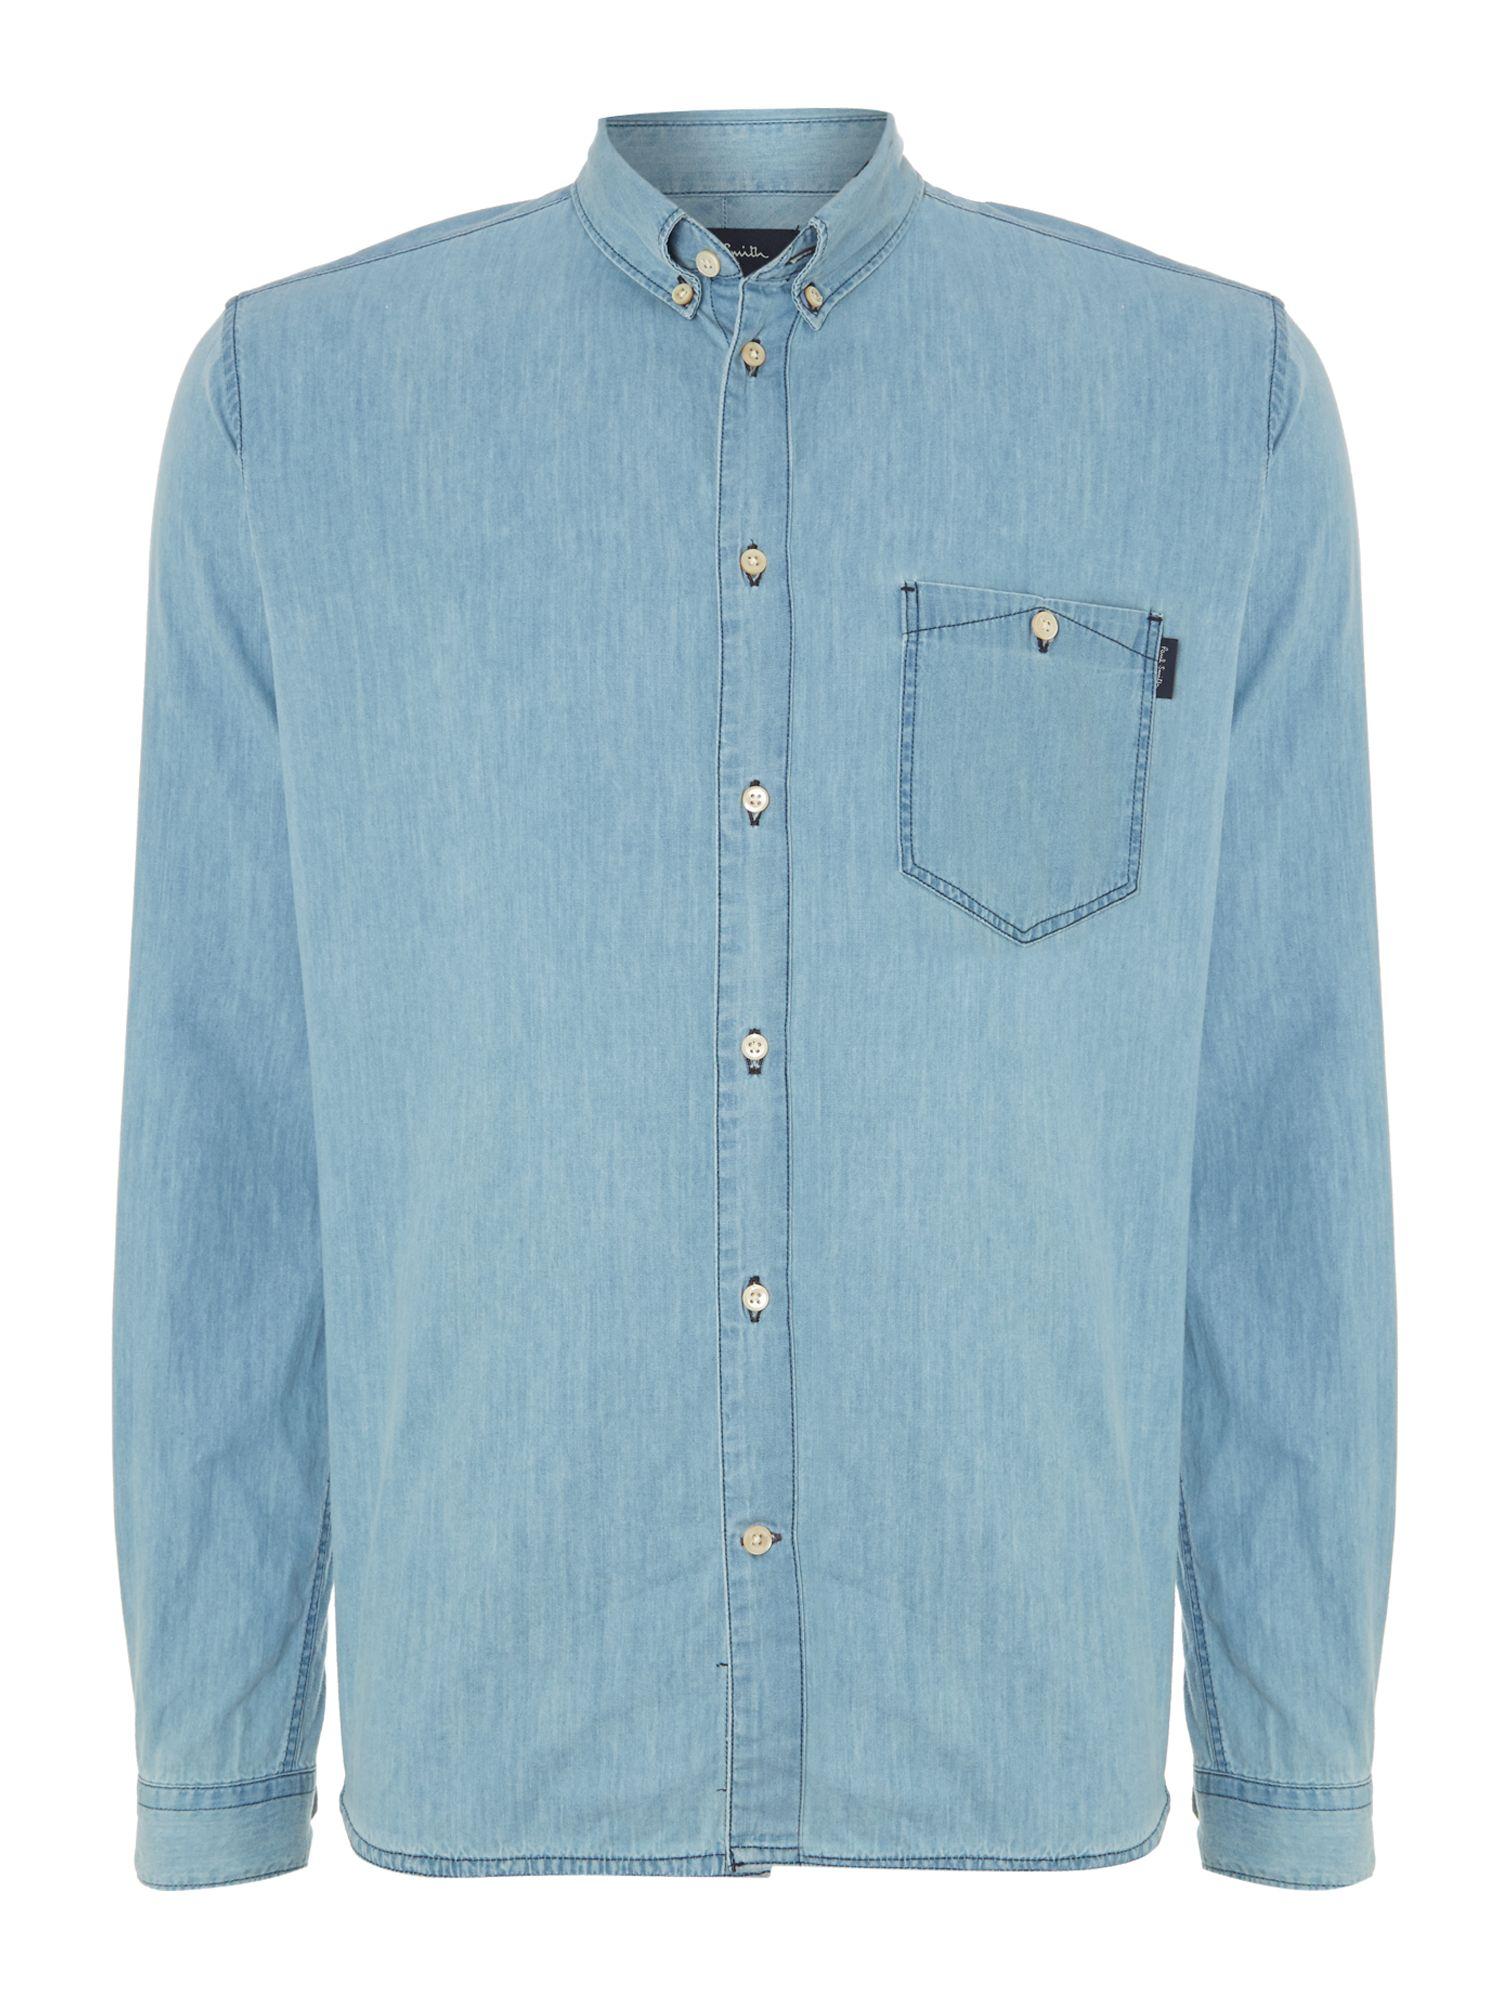 Denim wash shirt